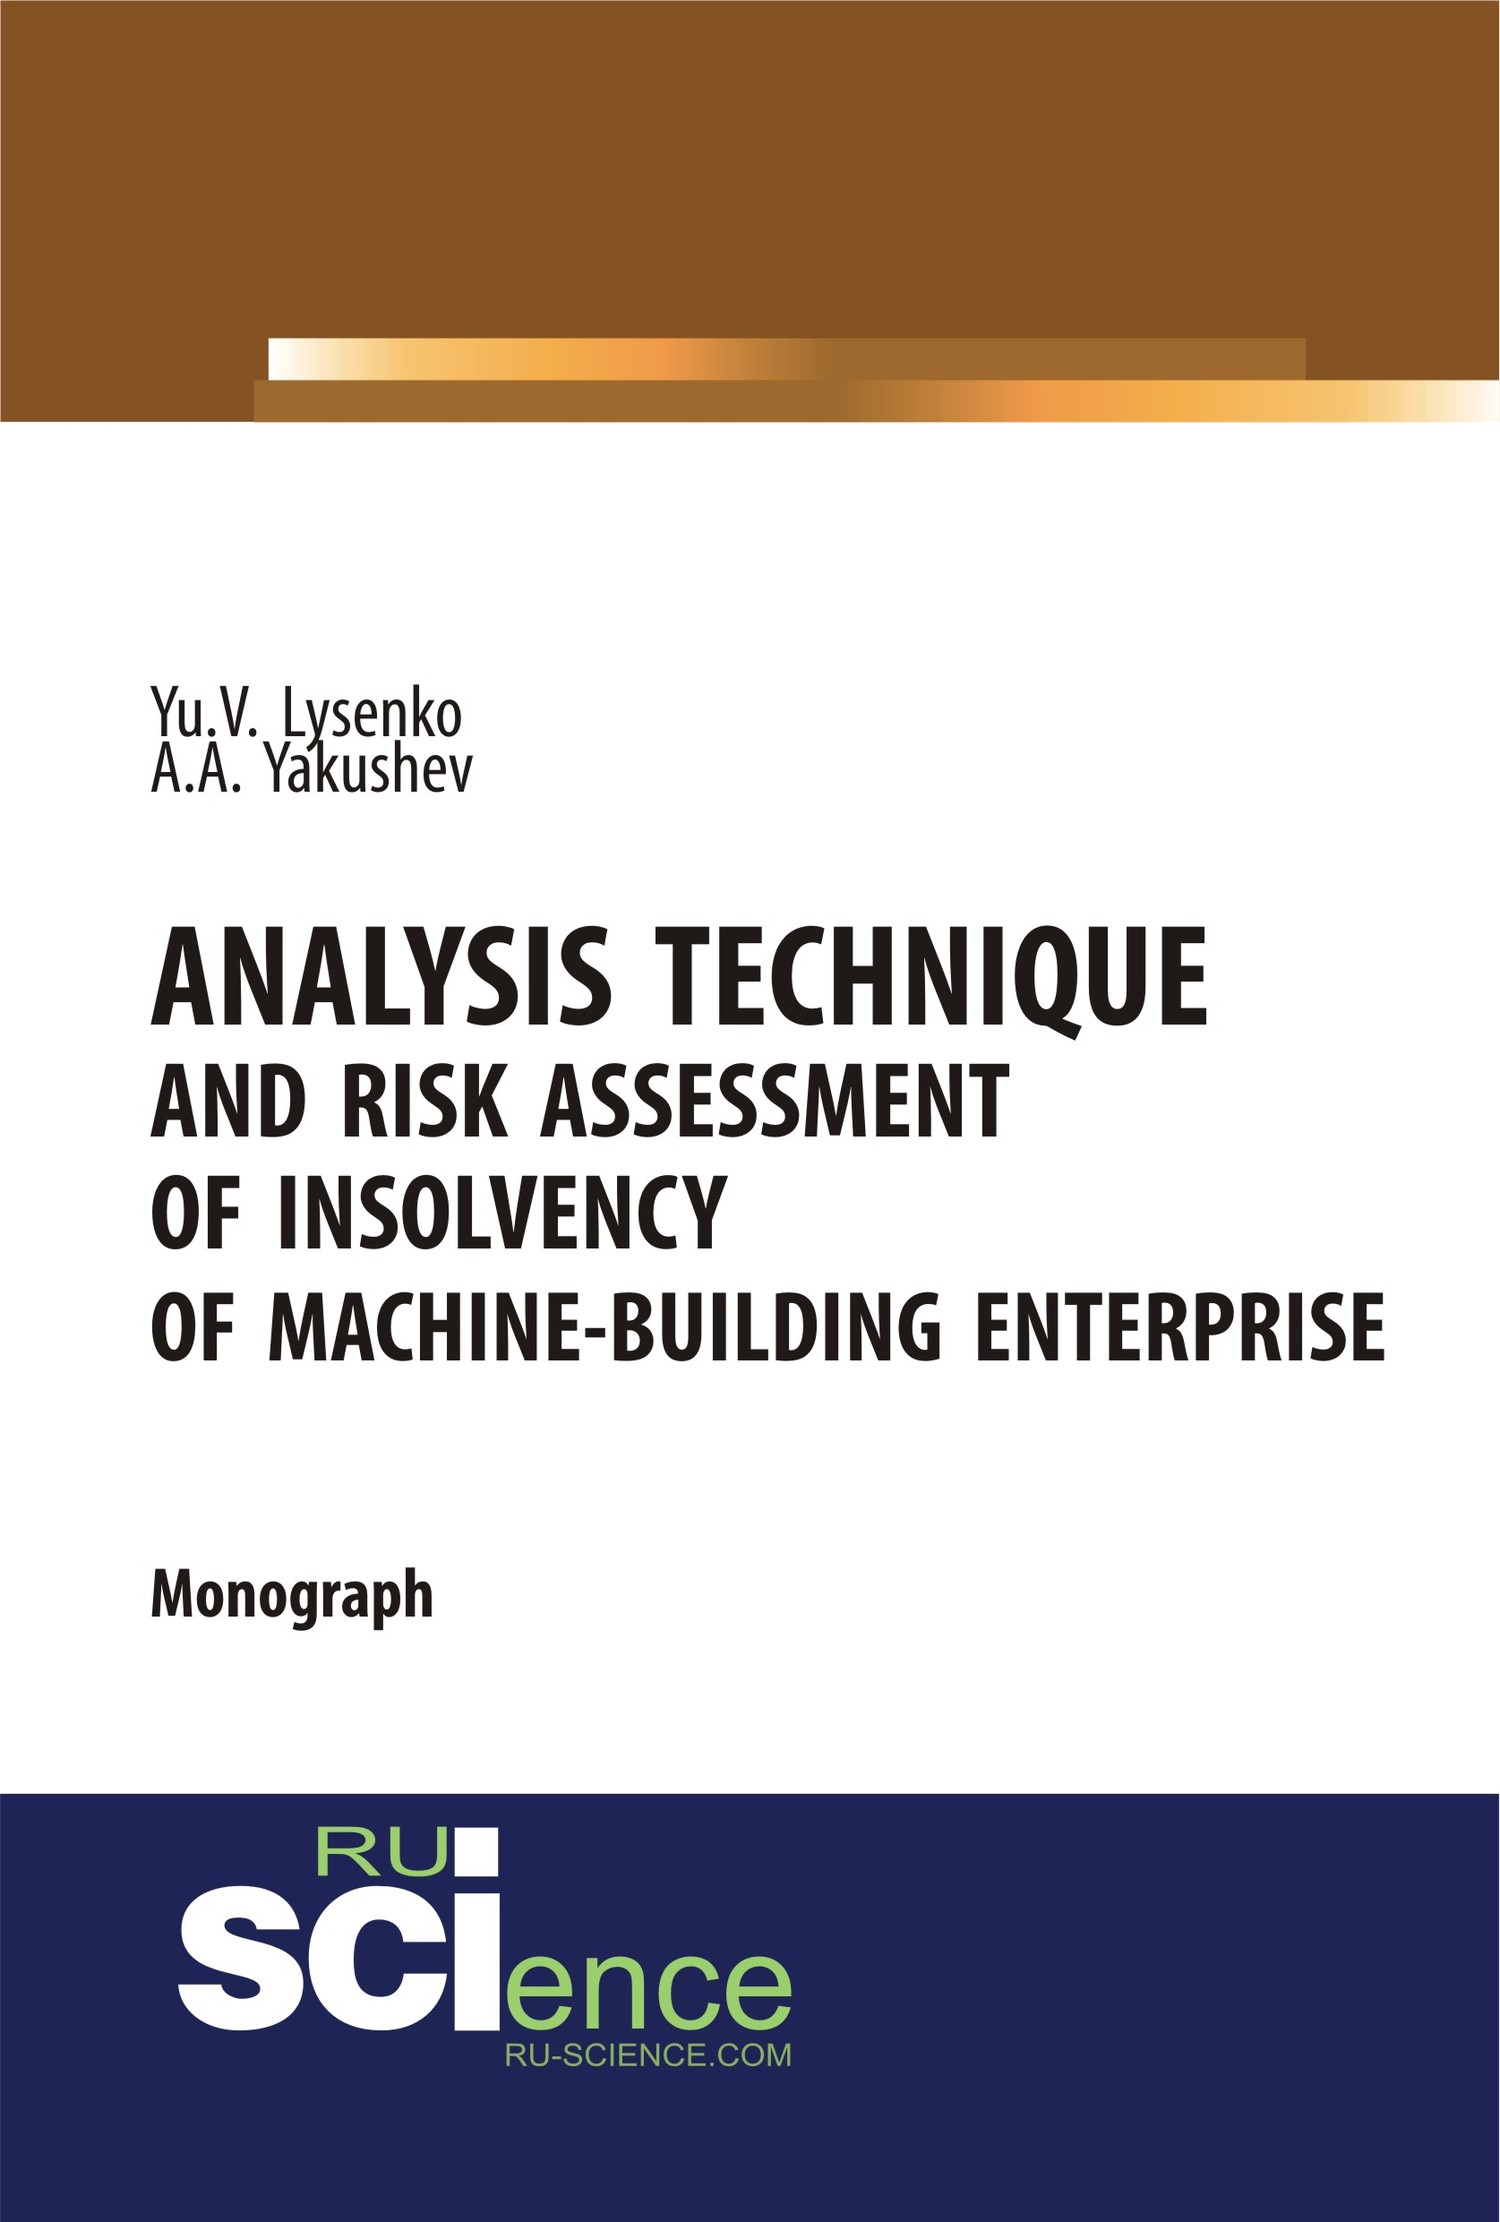 Ю. В. Лысенко Analysis technique and risk assessment of insolvency of machine-building enterprise economic analysis of rural and artisanal aquaculture in ecuador